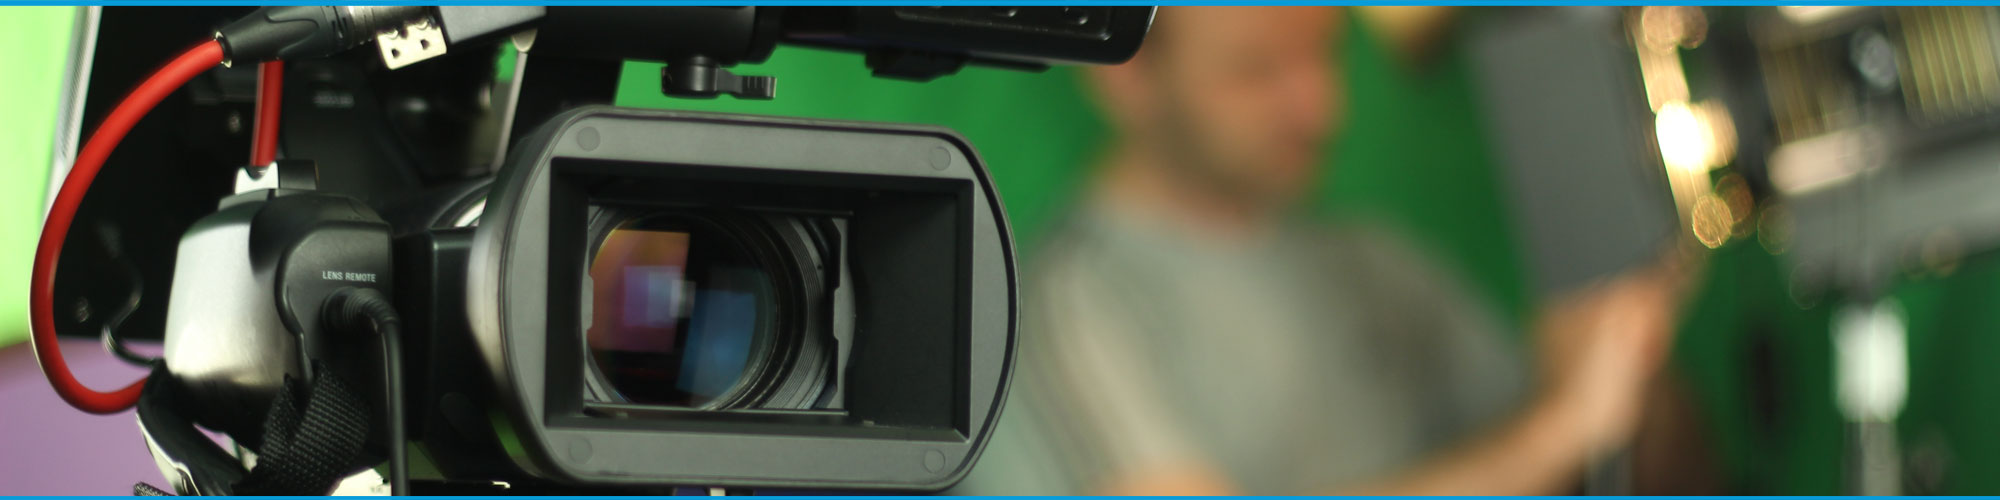 Corporate video production in Cheshire, Lancashire, Merseyside and Greater Manchester